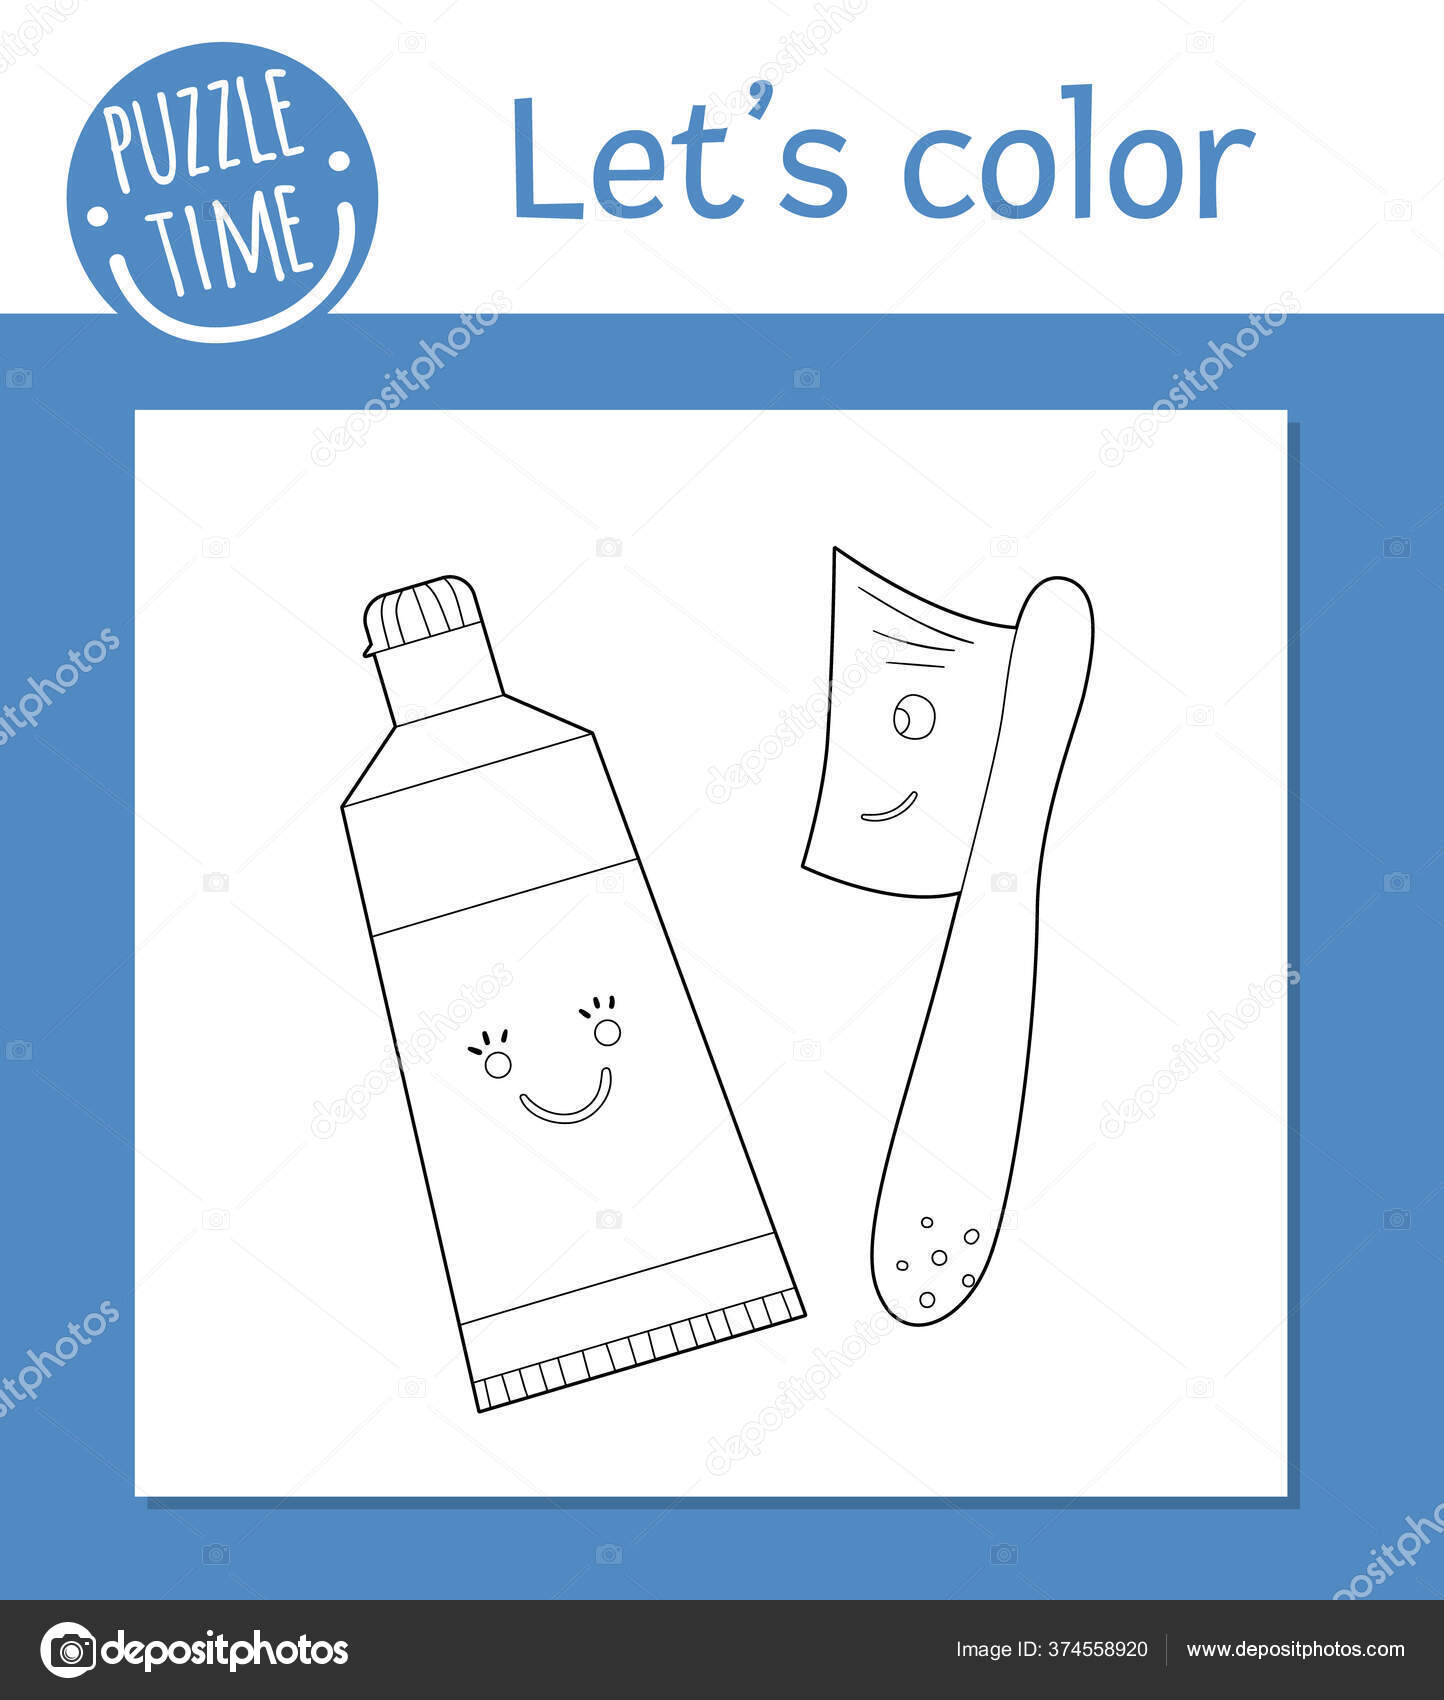 tooth-coloring-pages-683 | Dental kids, Dental health preschool ... | 1700x1444